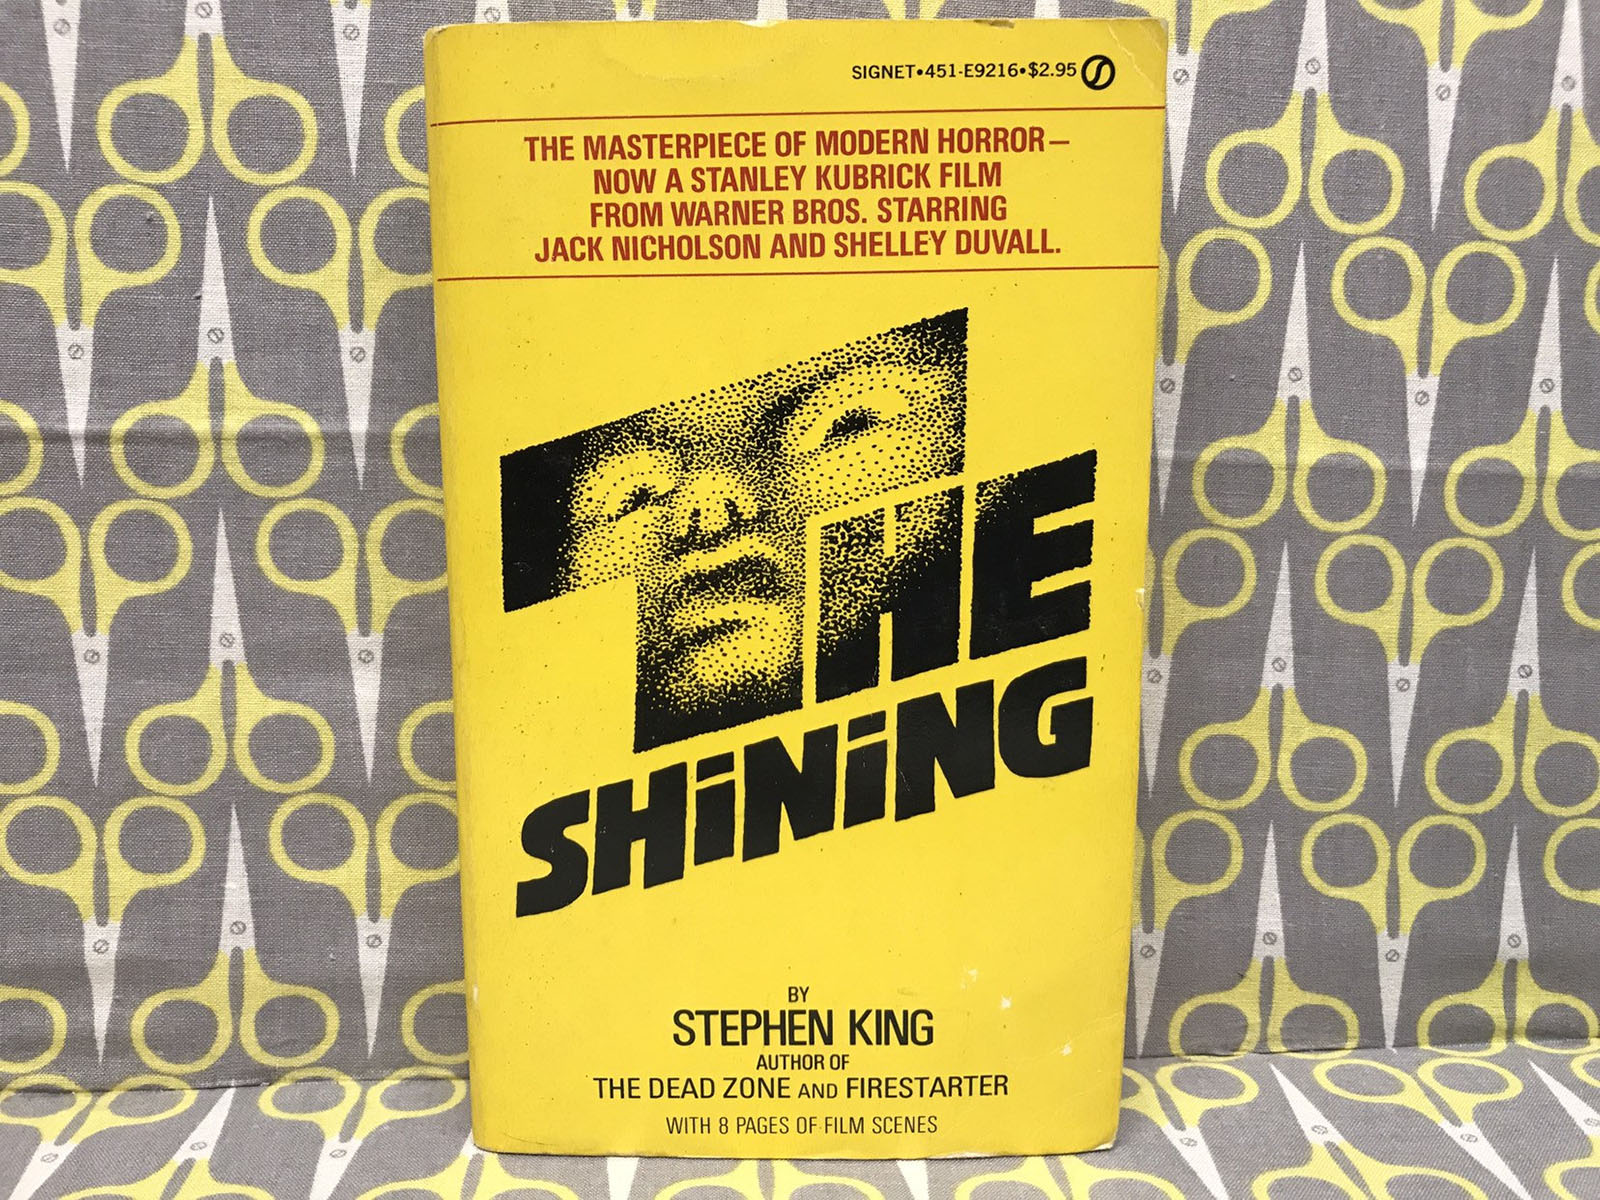 The Shining Paperback